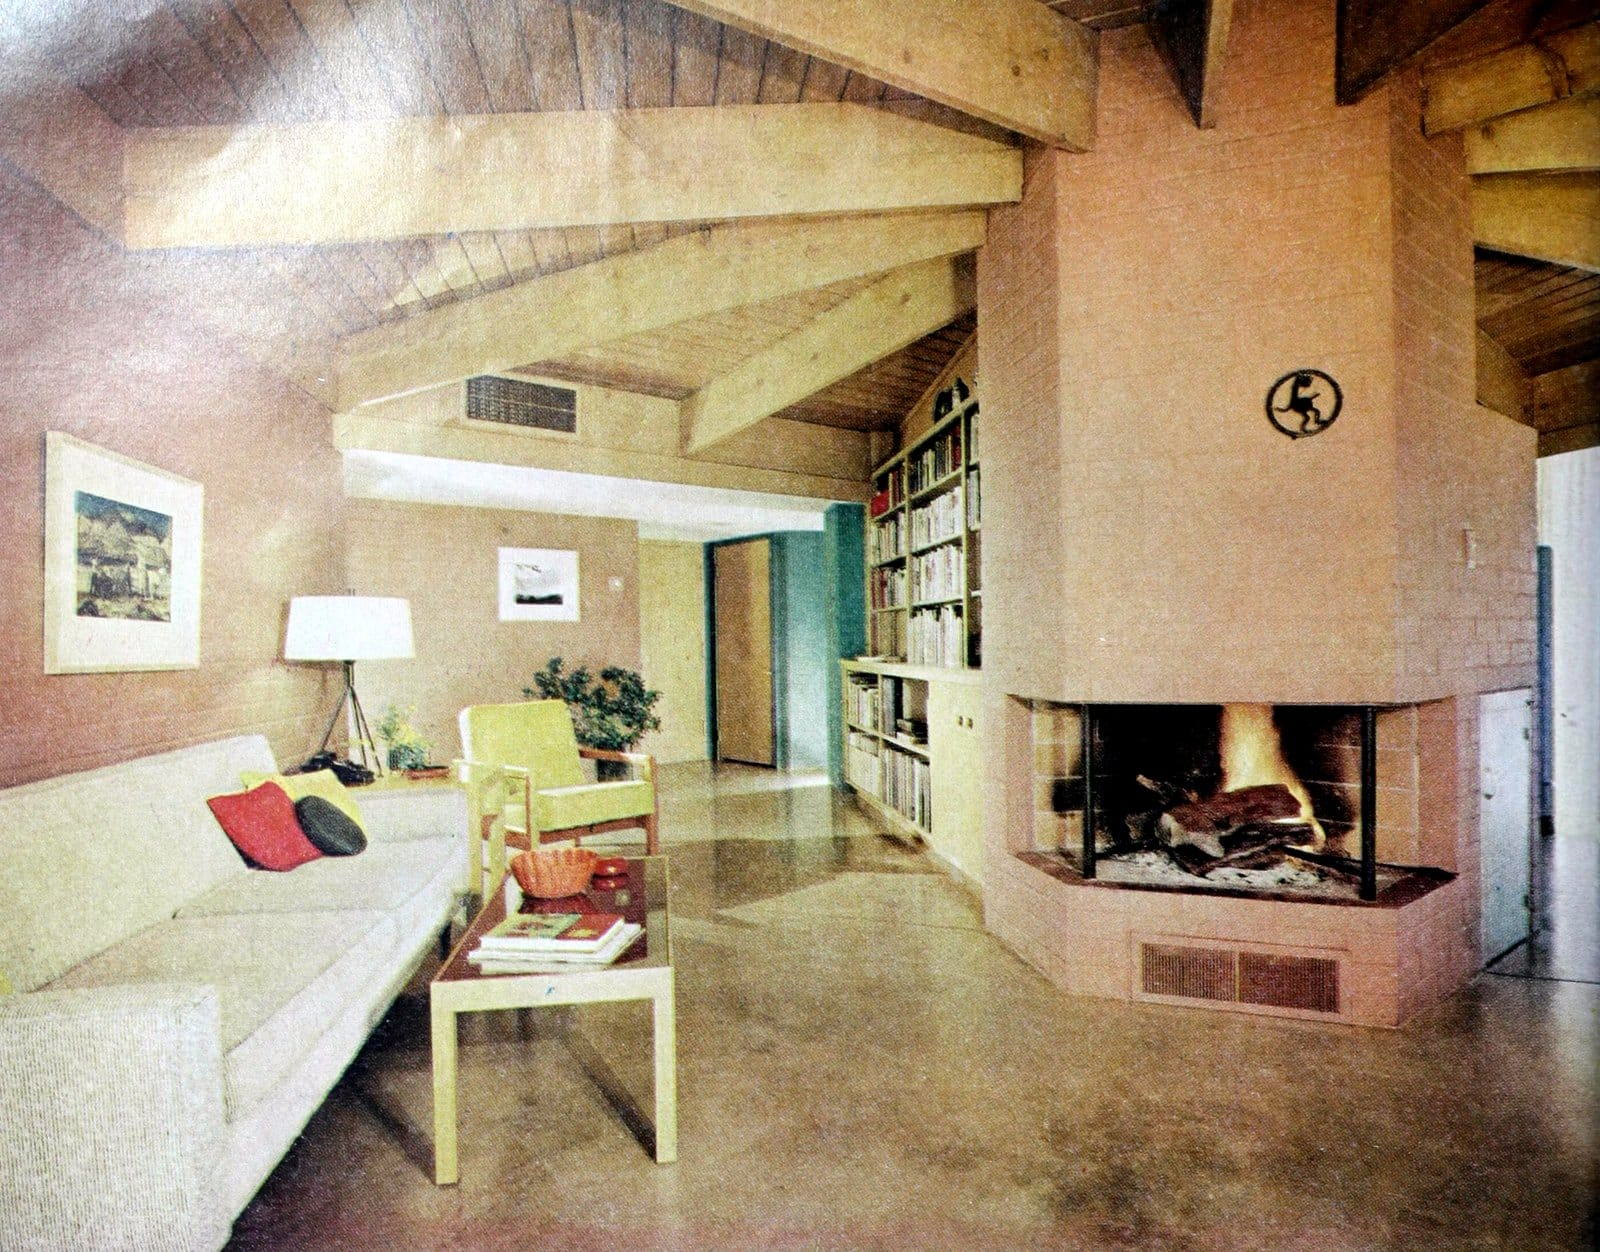 1960s living room decor - Pink brick fireplace and plain floors (1962)